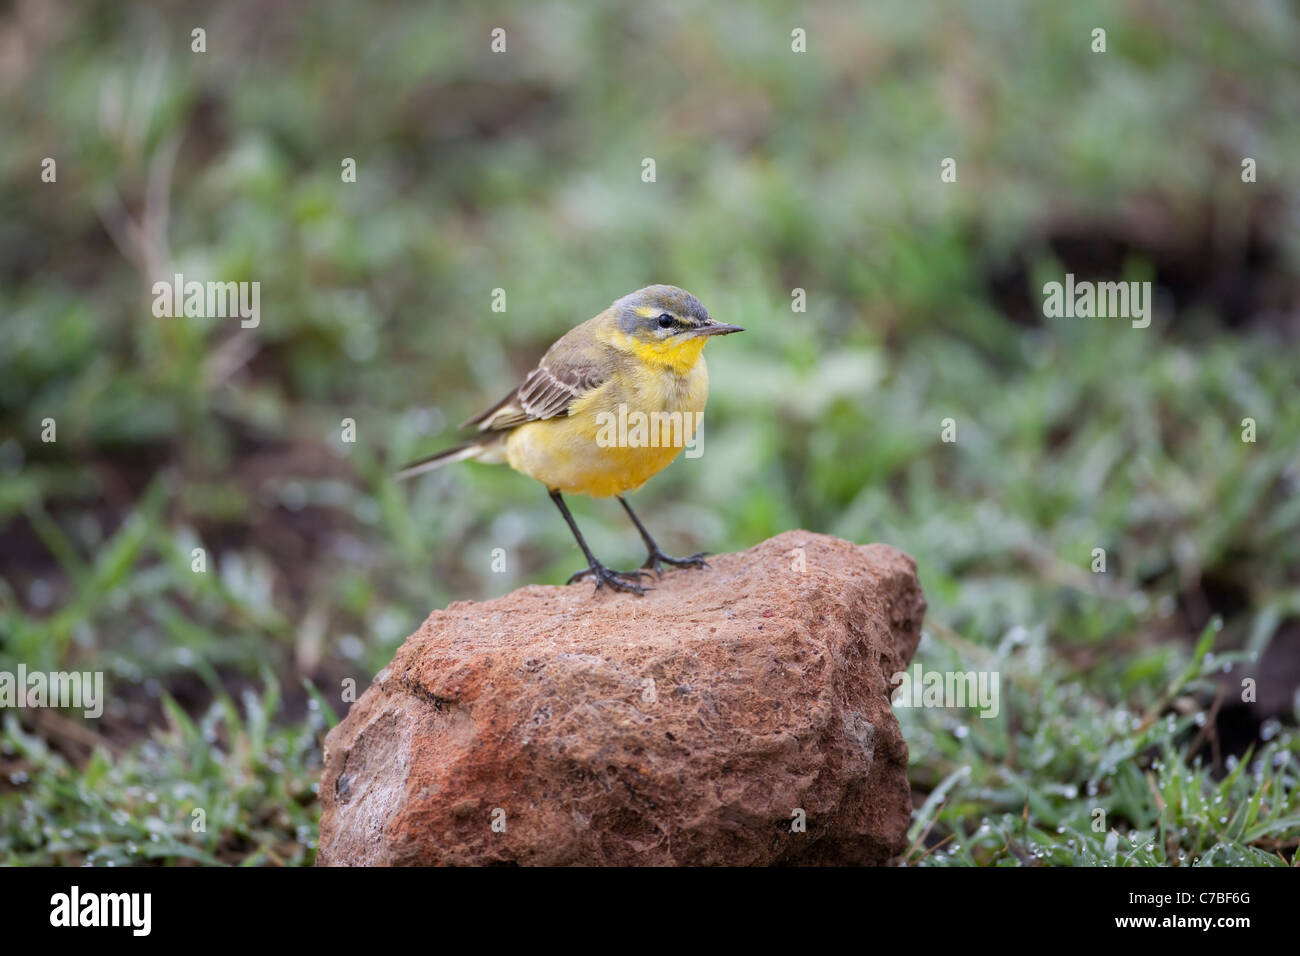 Yellow Wagtail Motacilla flava perched on an brick colored coloured stone in the Ngorongoro crater in Africa - Stock Image